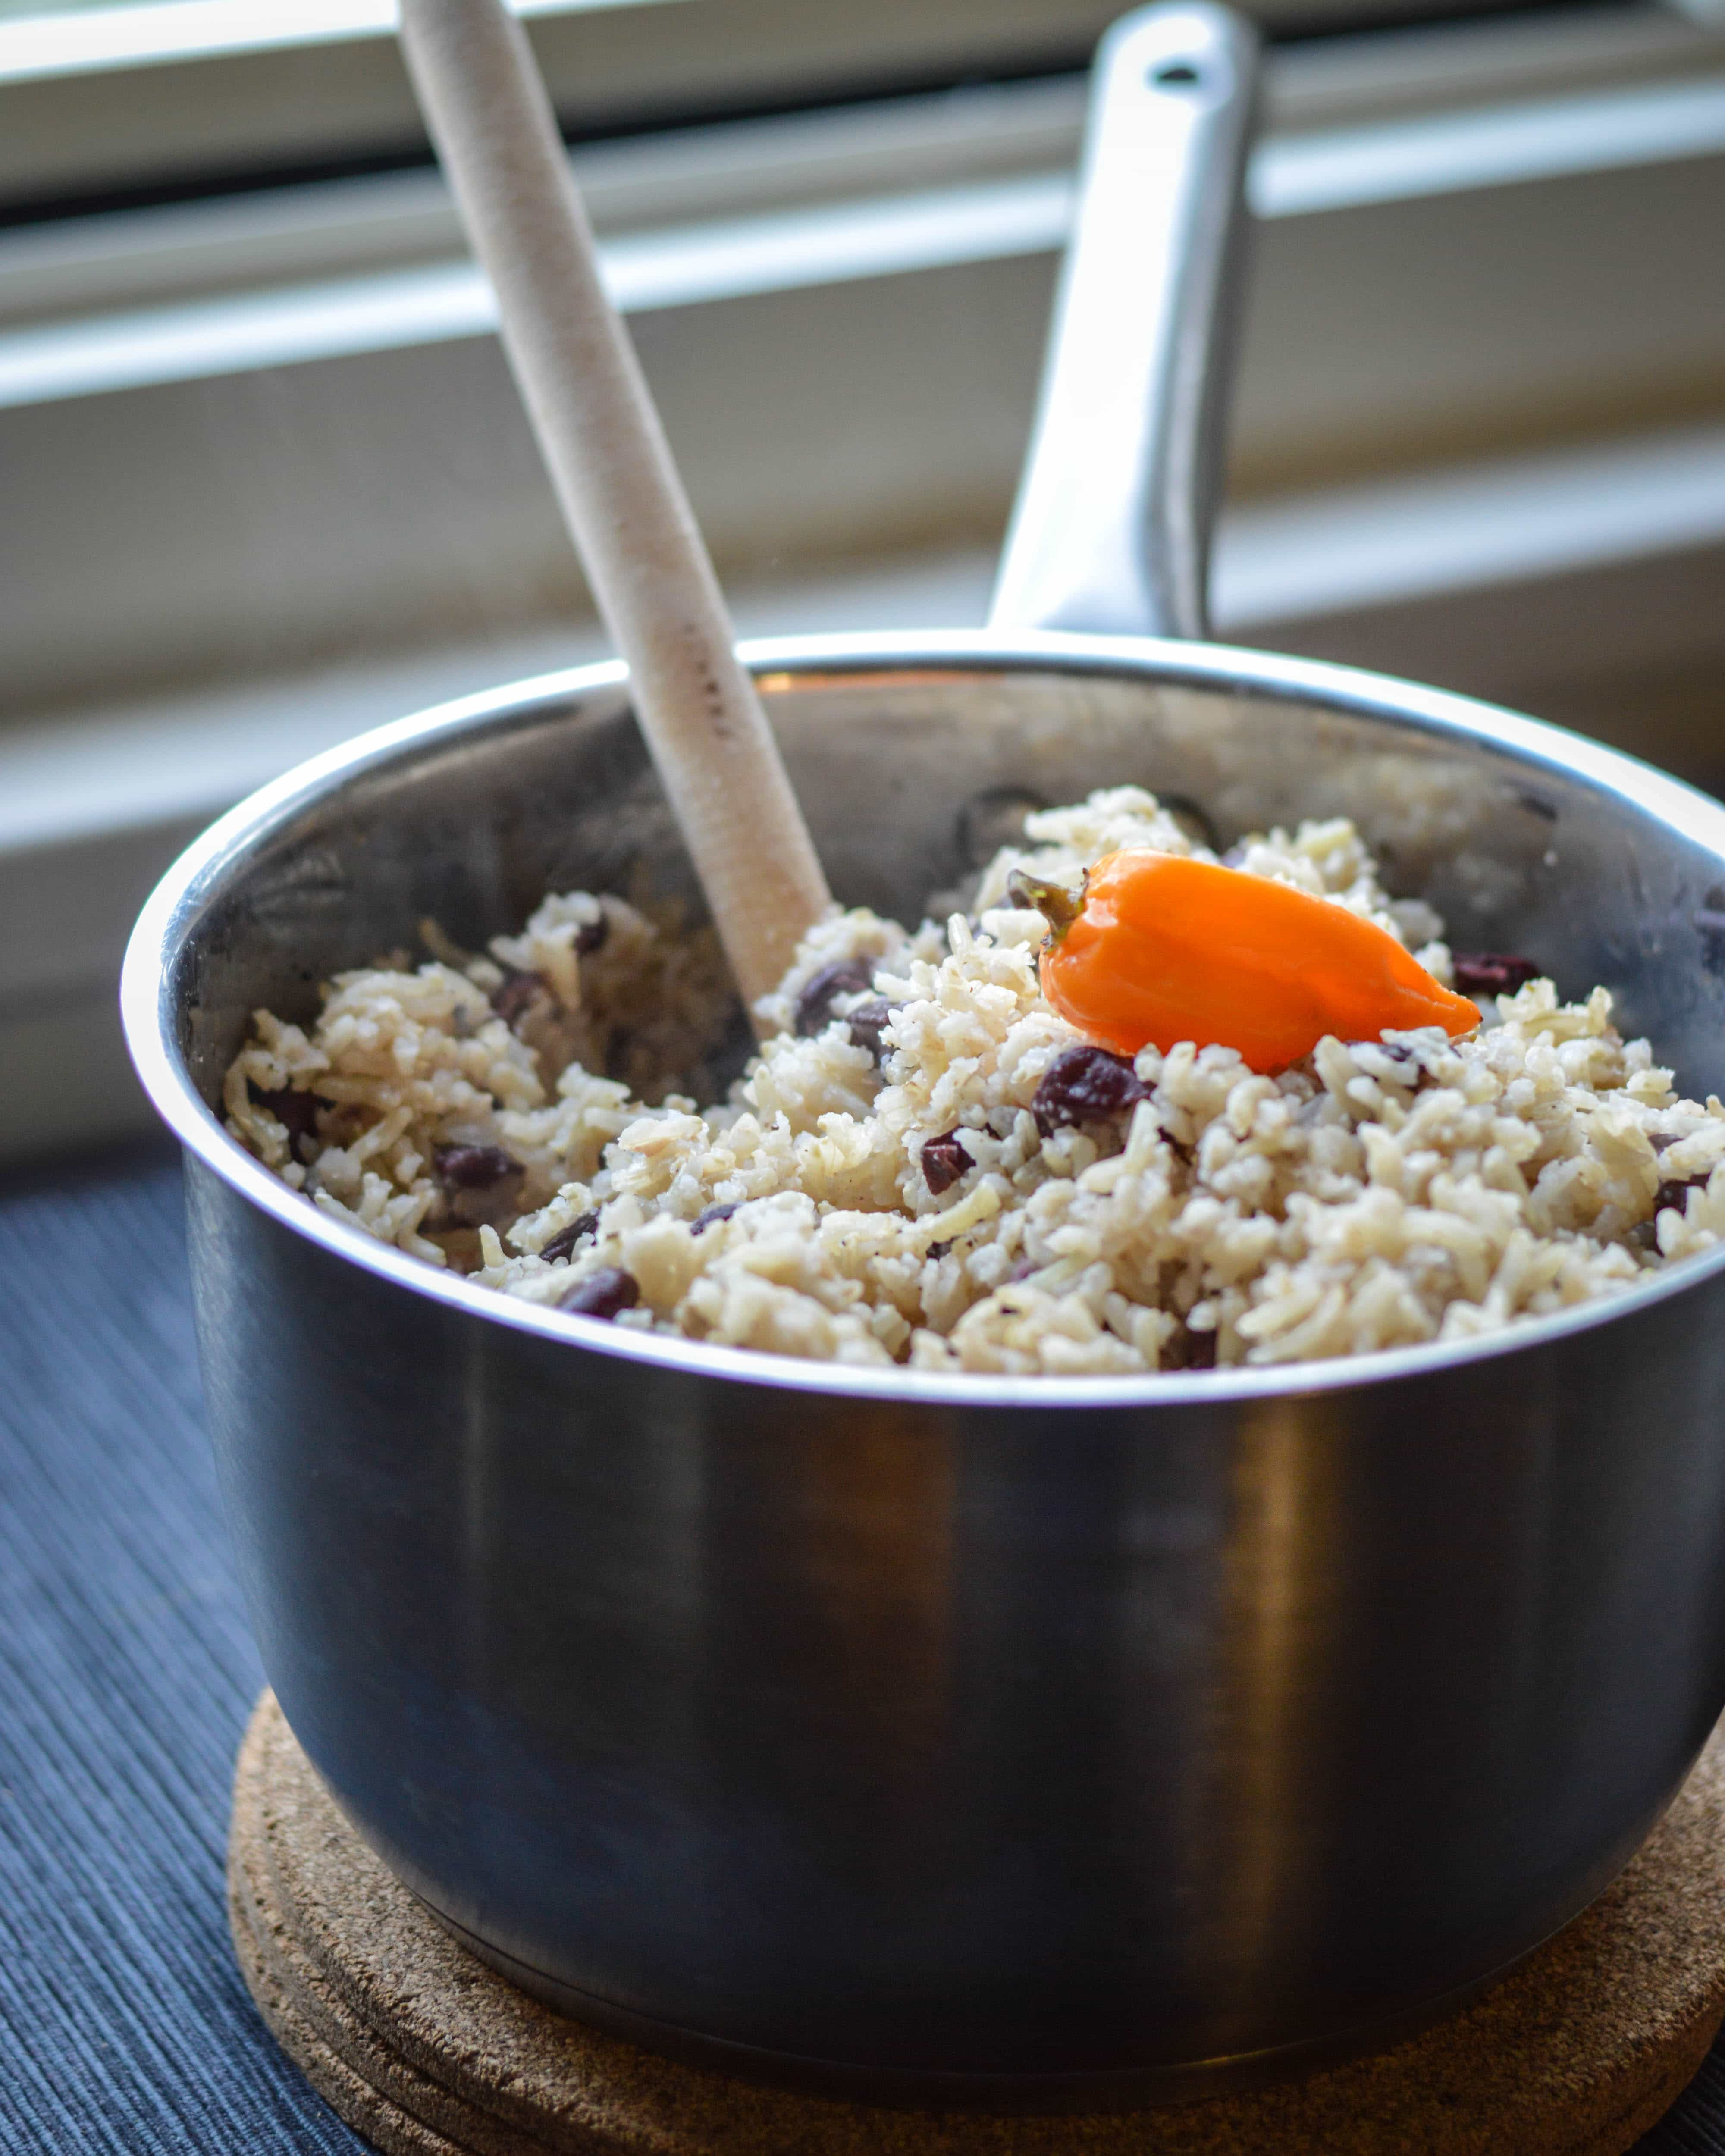 cooking rice and peas jamaican style Gungo peas and rice is a variation of traditional rice and peas however, instead of kidney beans, gungo peas (also called pigeon peas) are used.